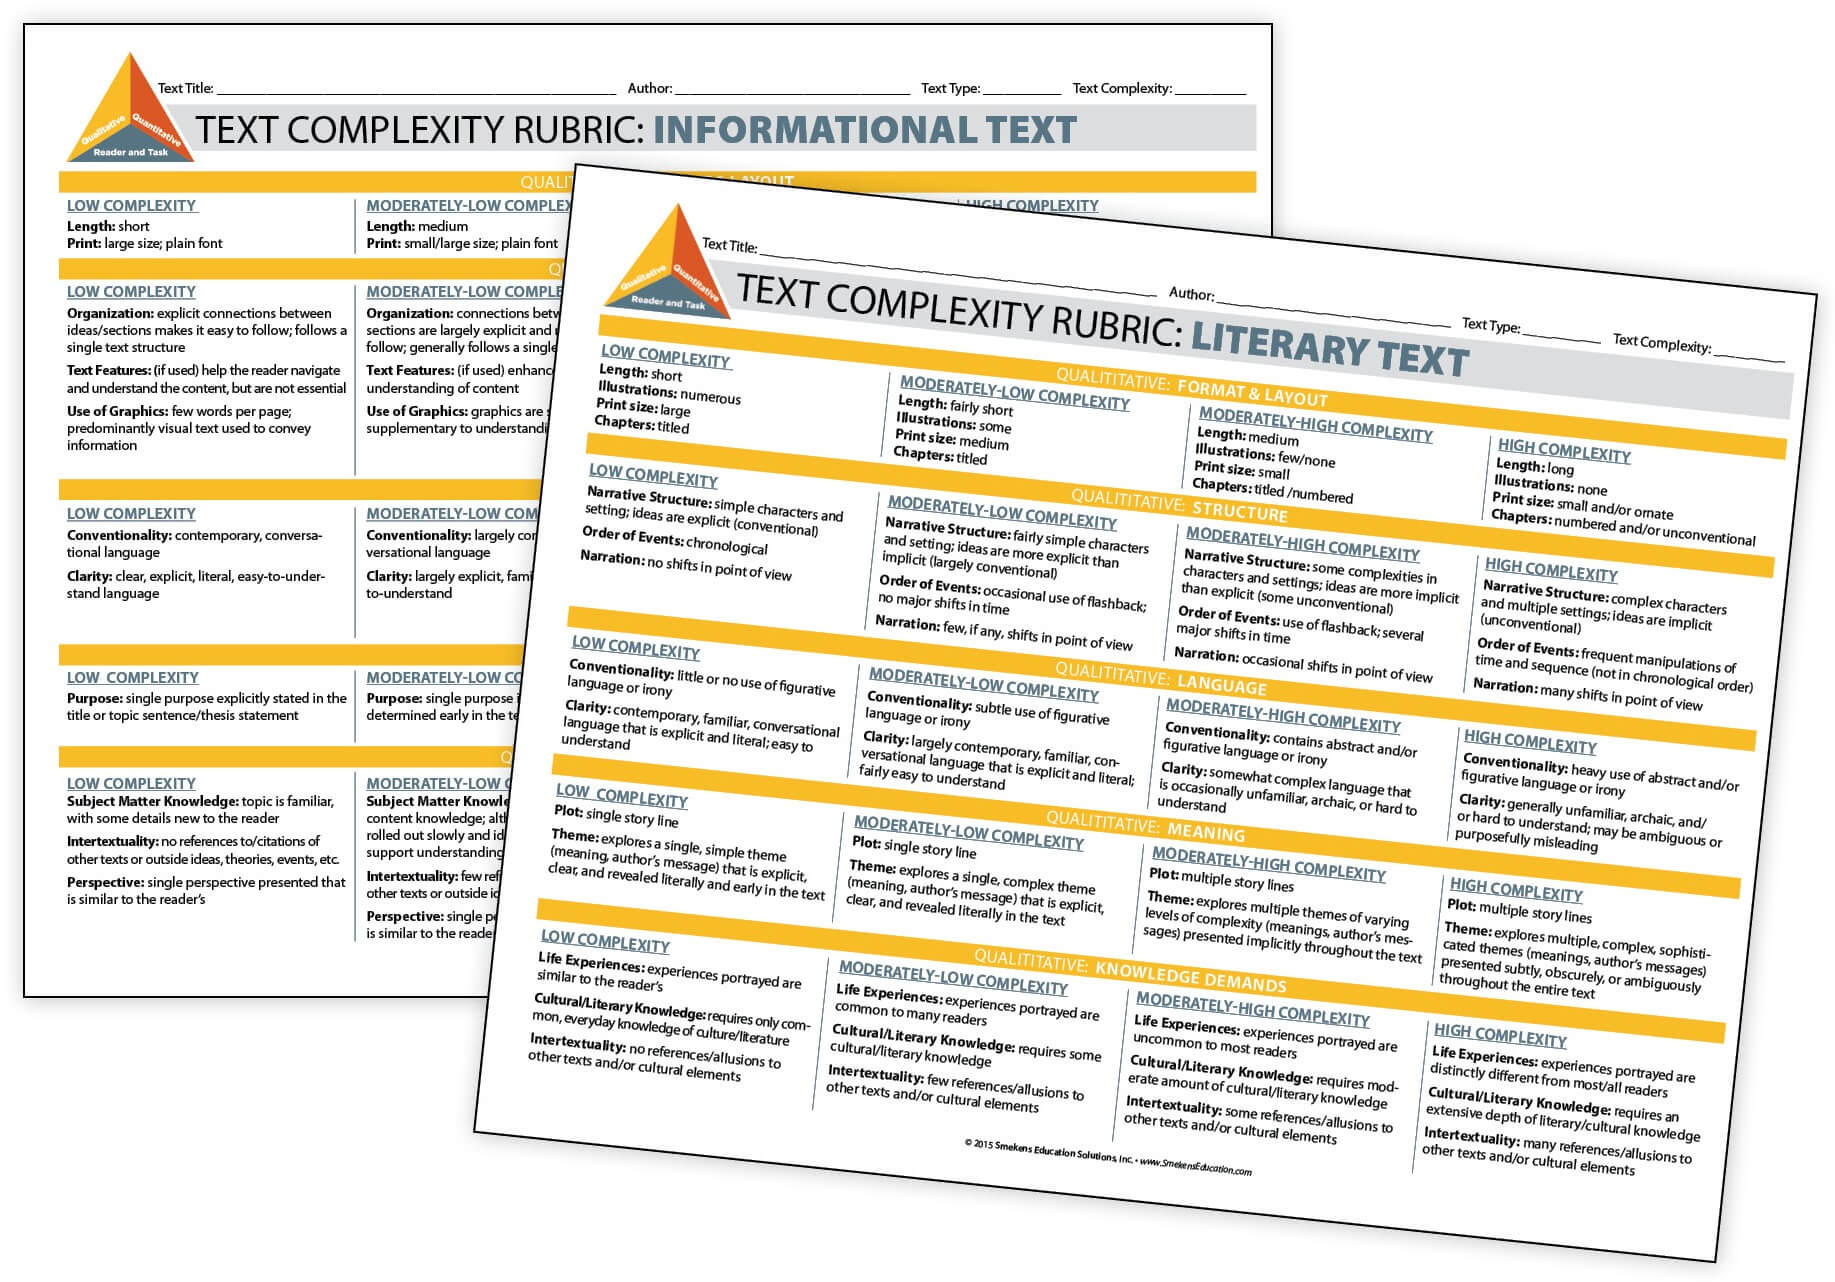 Text Complexity Rubric: Literature & Informational Text